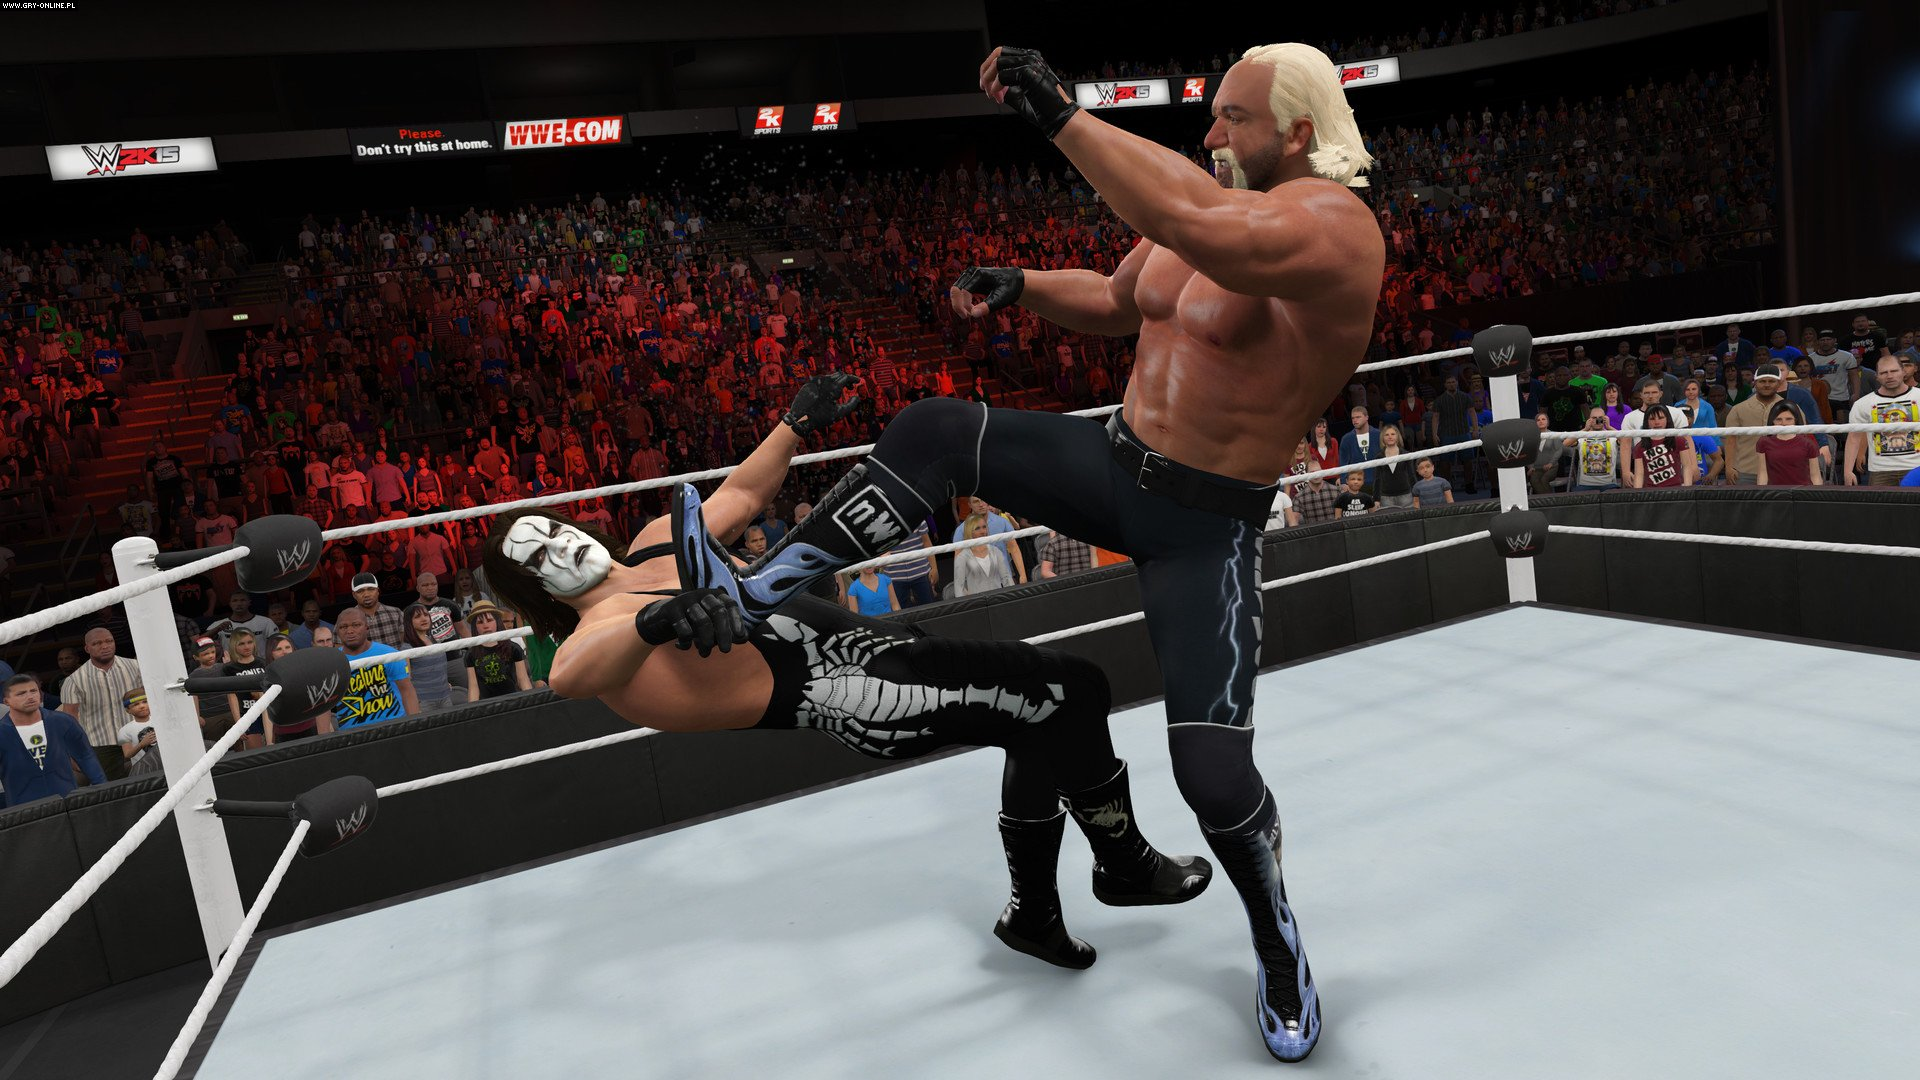 WWE 2K15 PC Games Image 3/31, Yuke's, 2K Sports